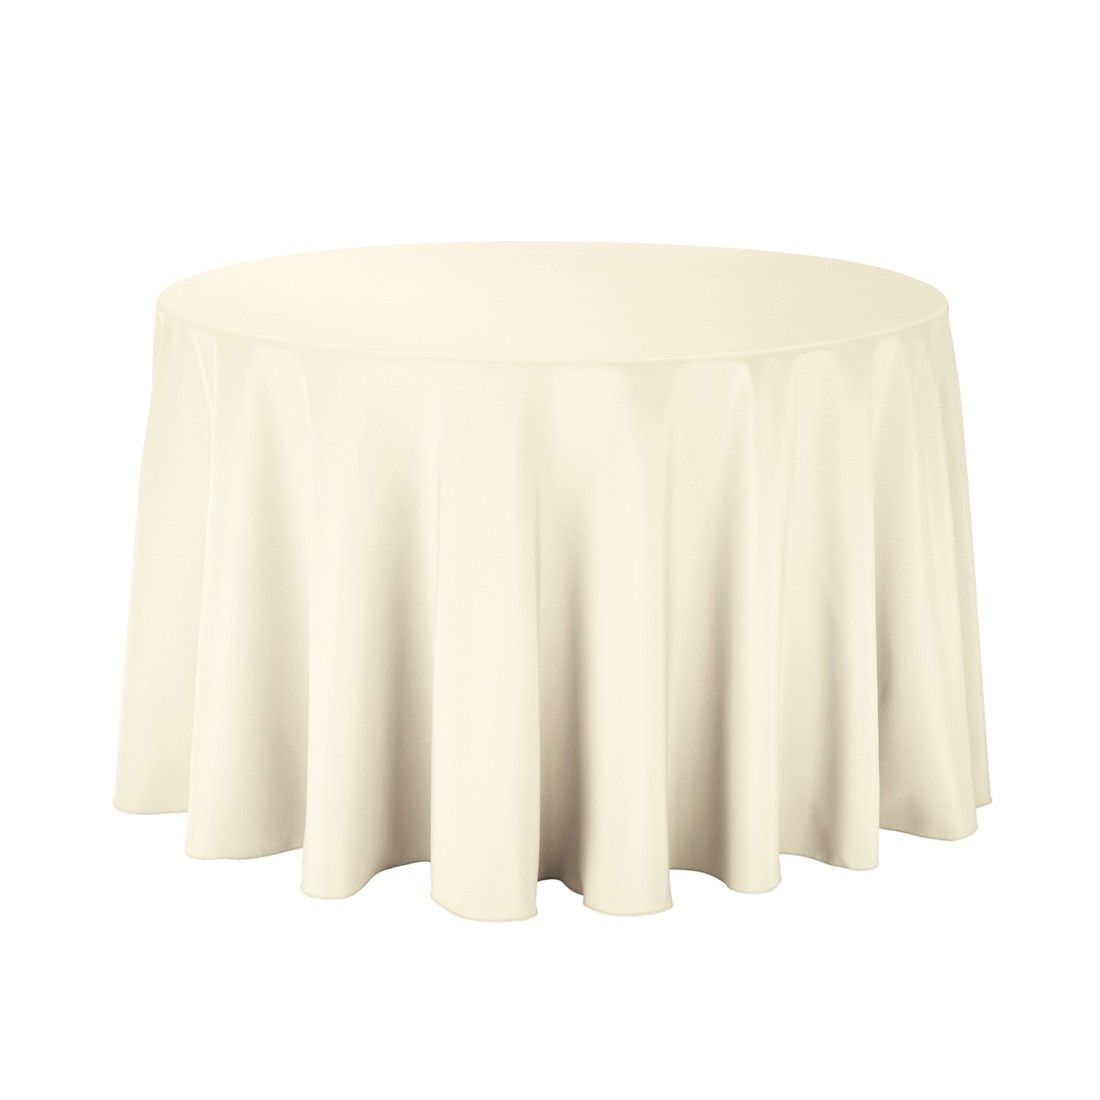 108 Inch Round Polyester Tablecloth Ivory Only 5 Each White Table Cloth Table Cloth Round Table Covers